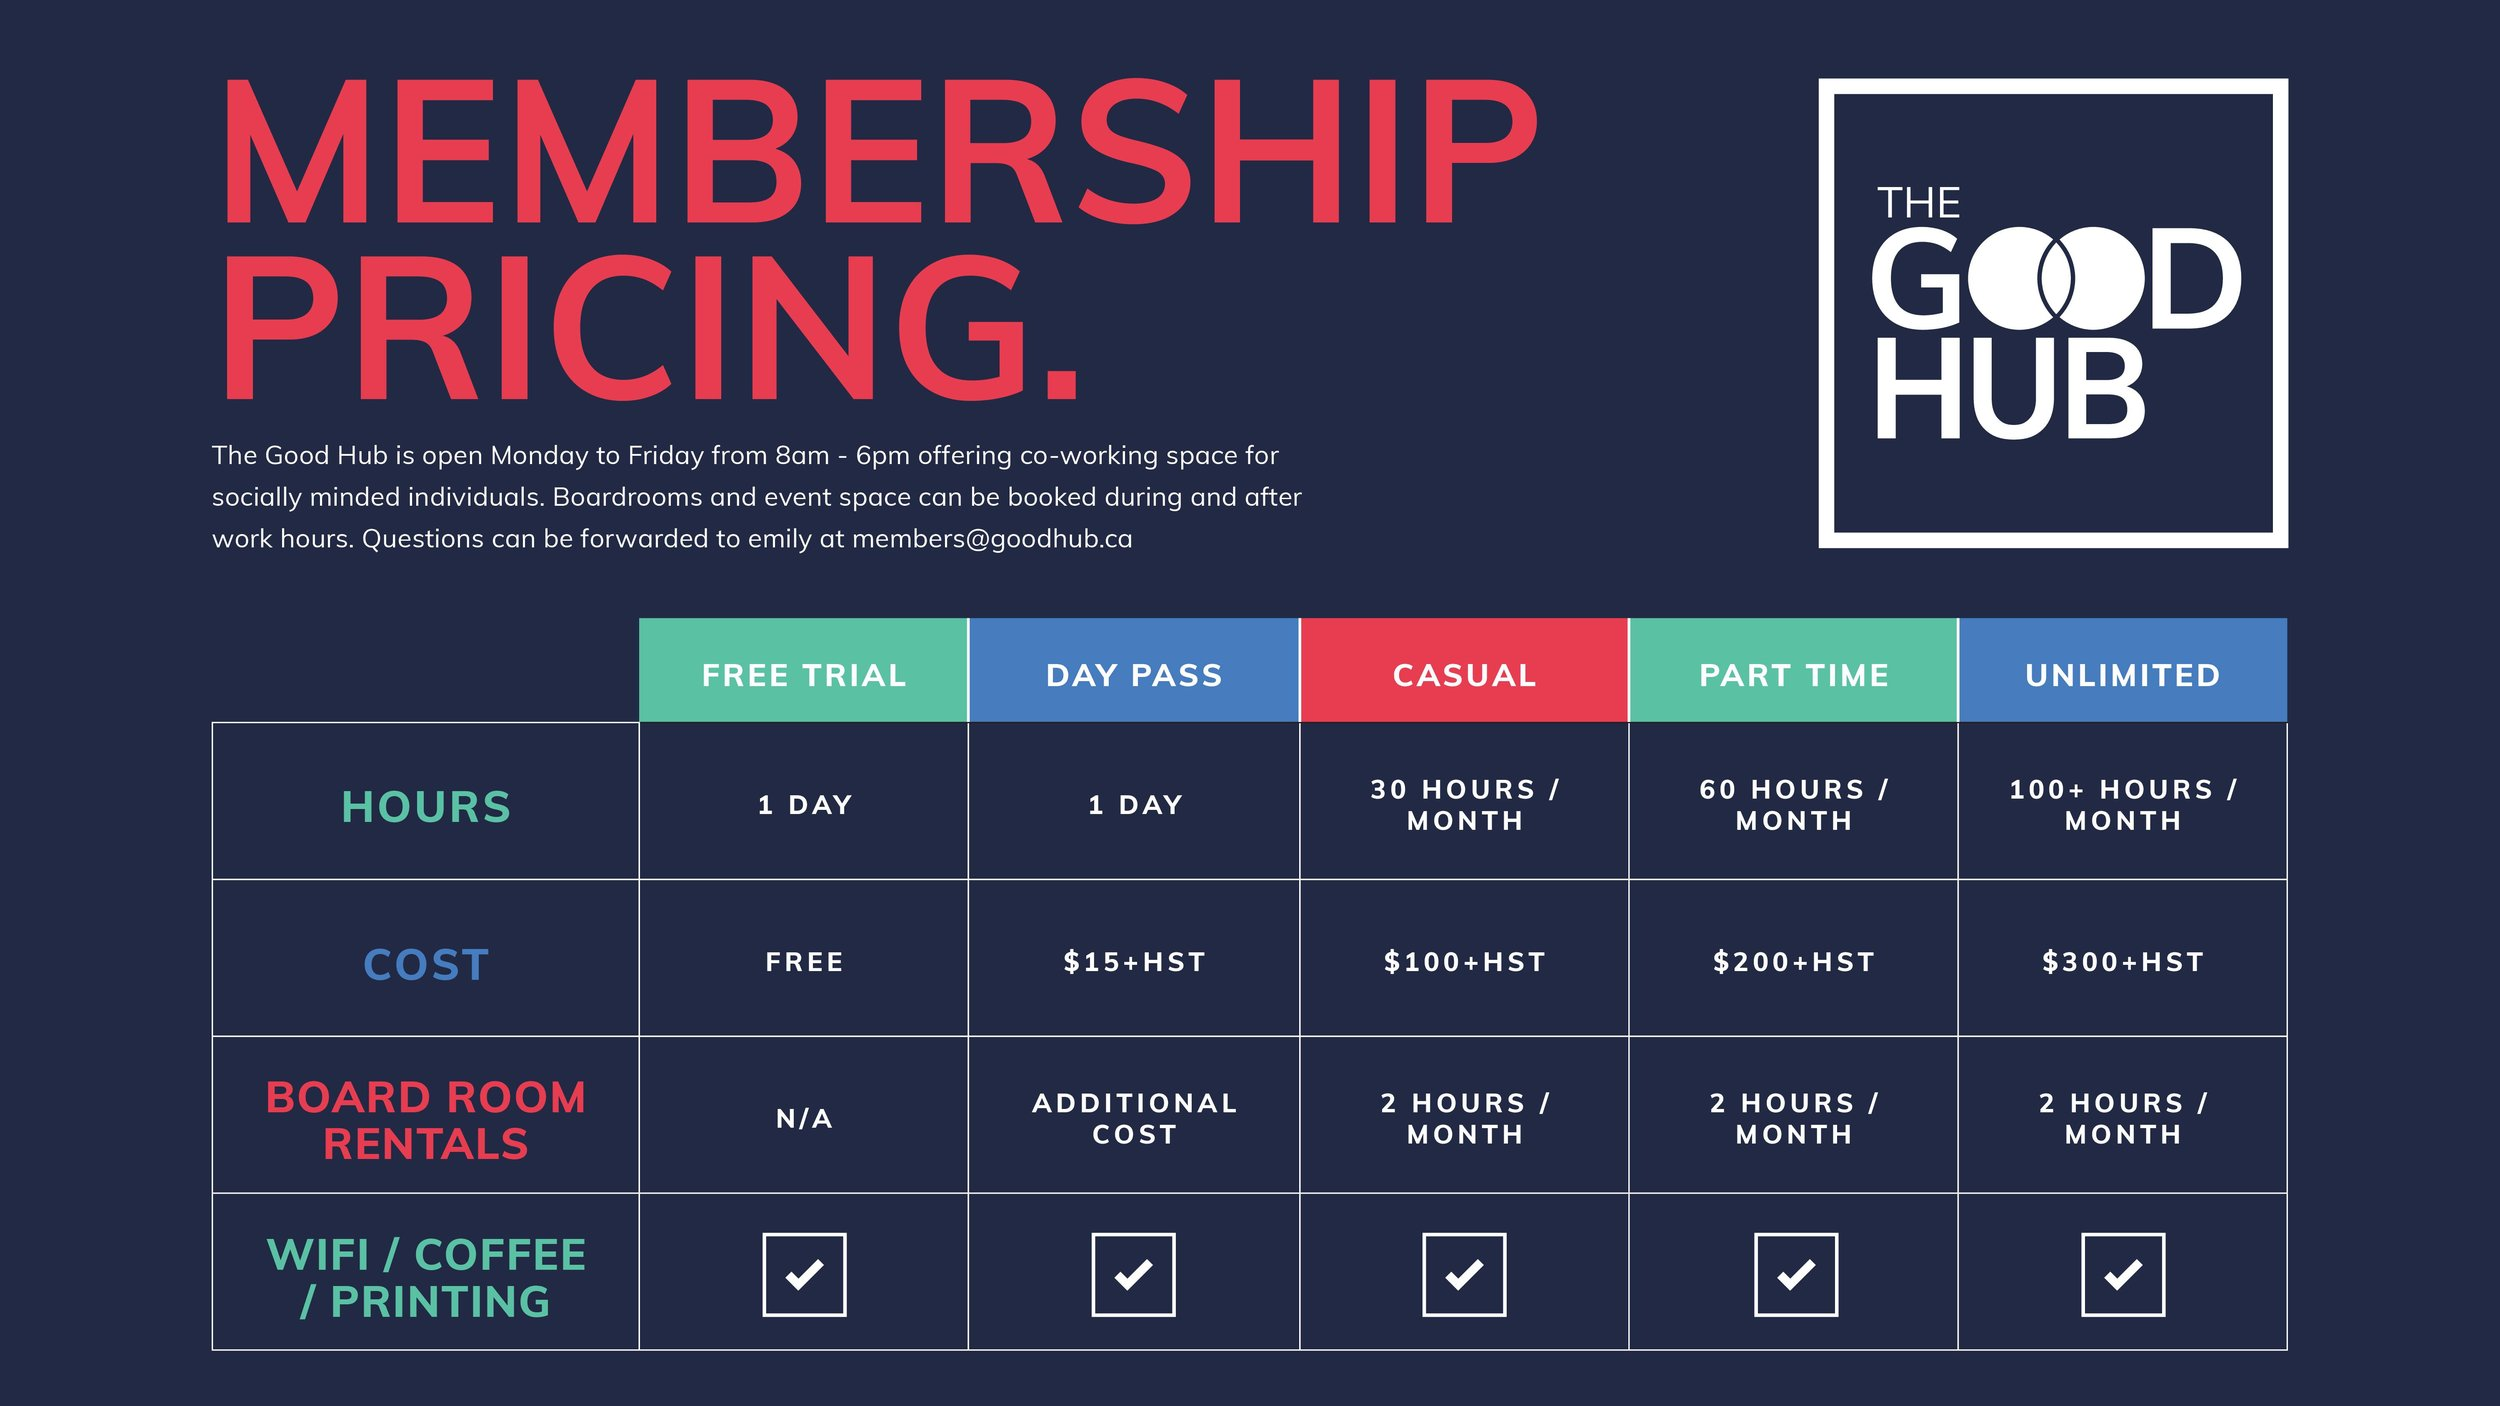 Membership Pricing PROOF v2.jpg